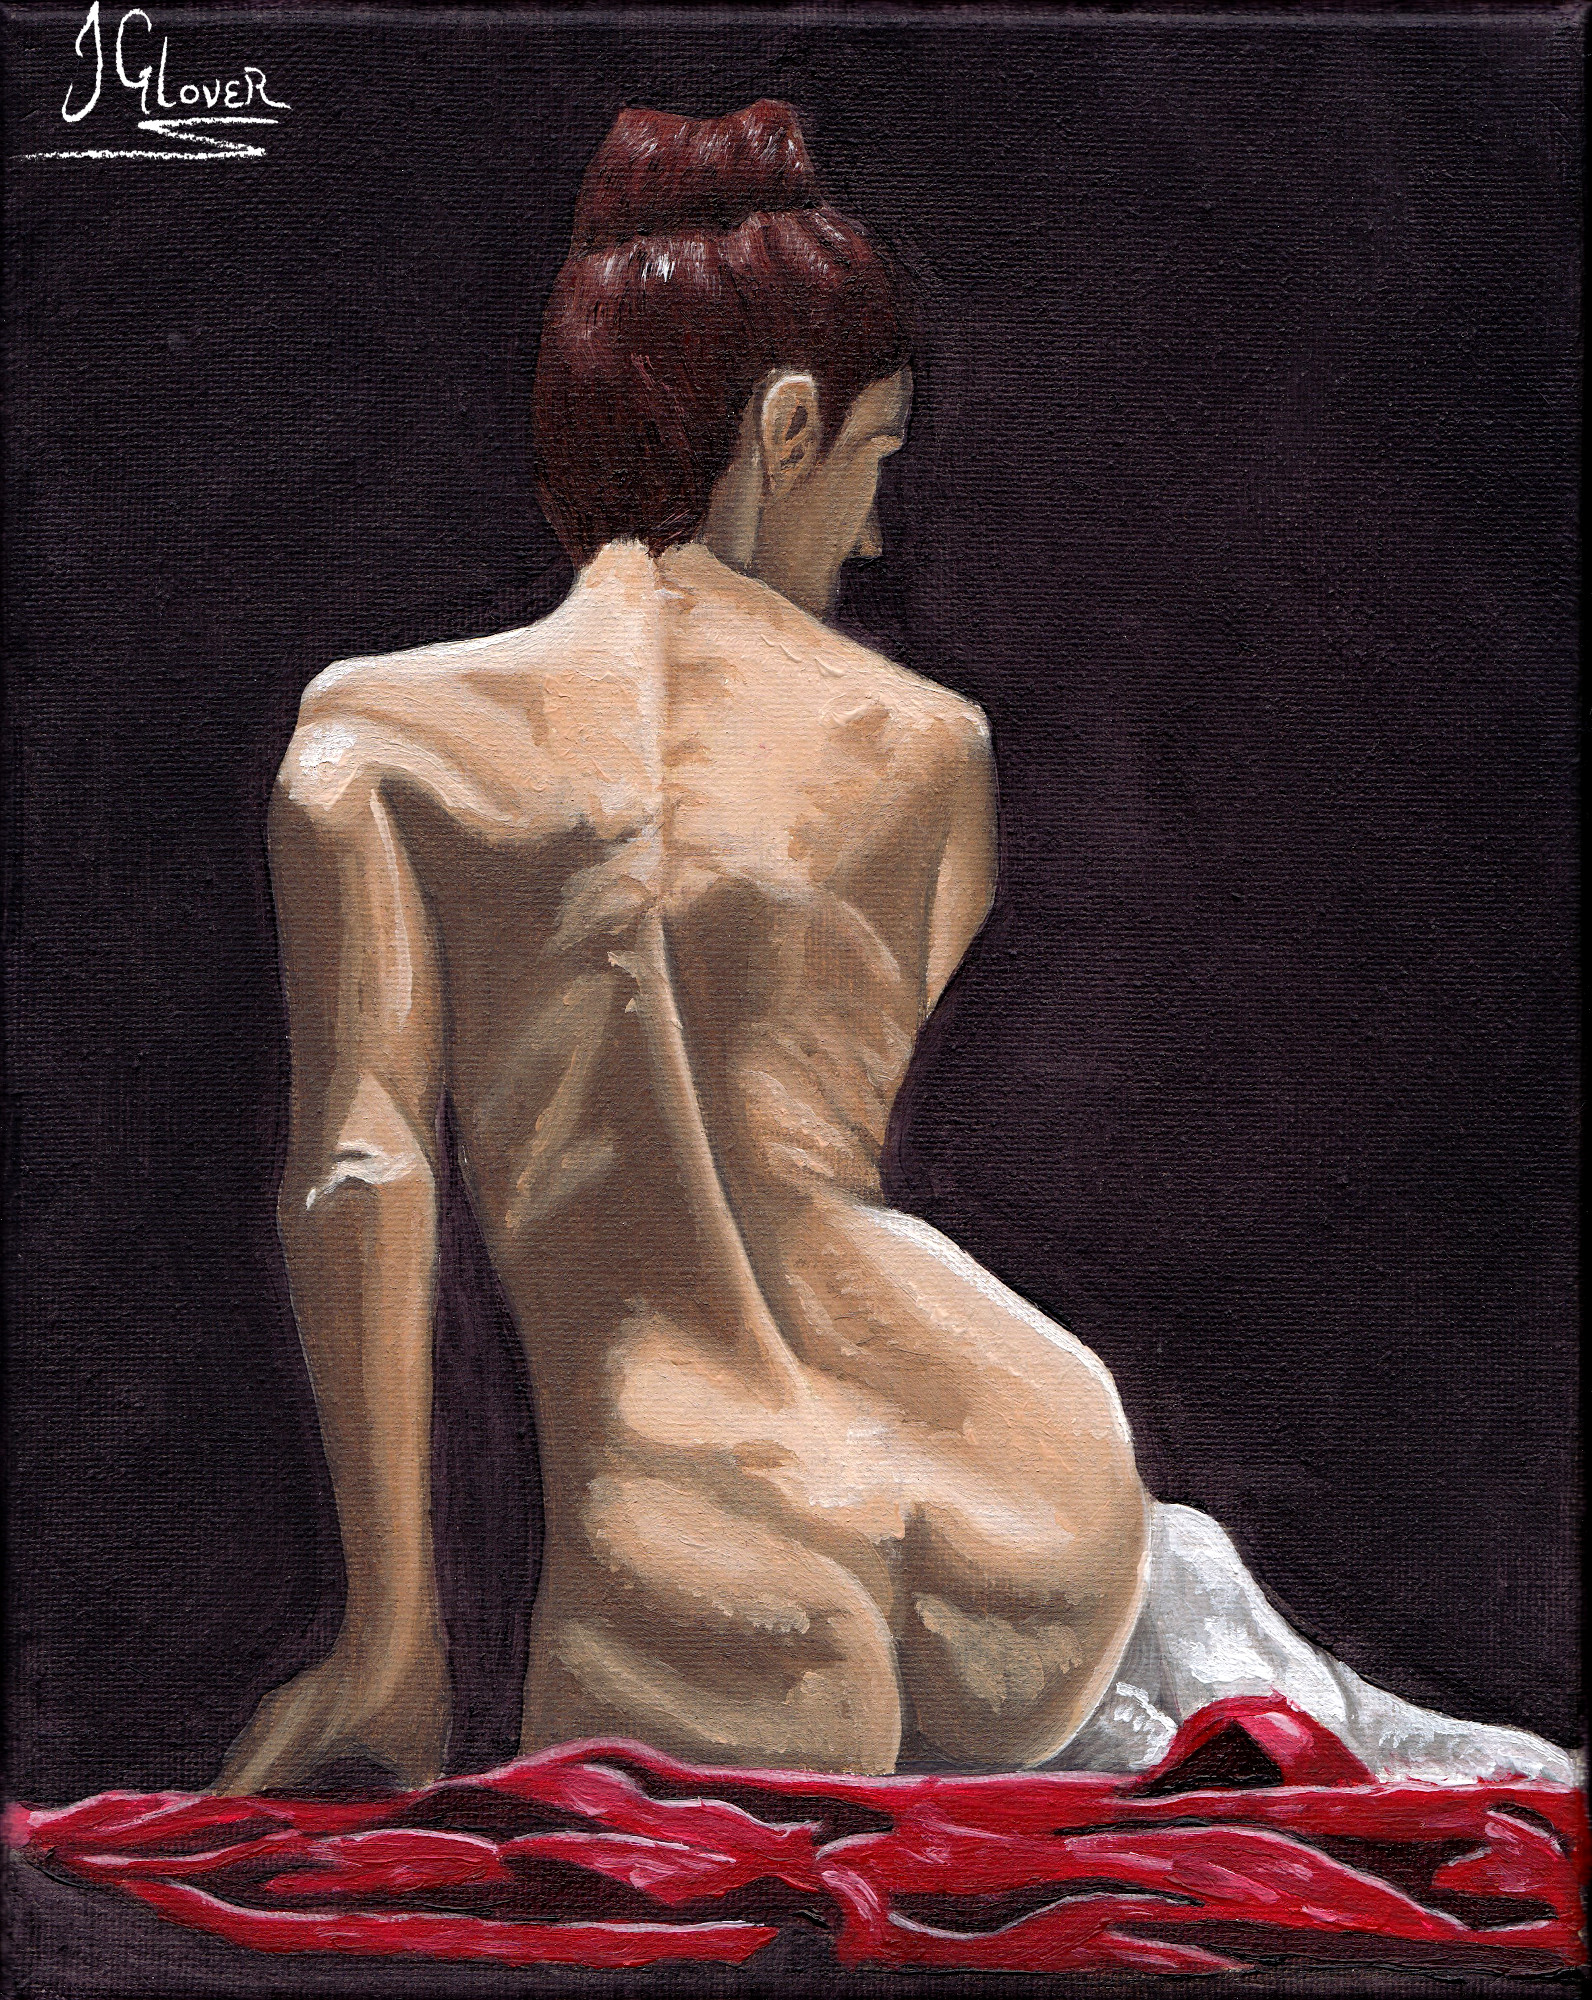 Nude Geisha Girl Model Life Drawing Painting Figure Study Art